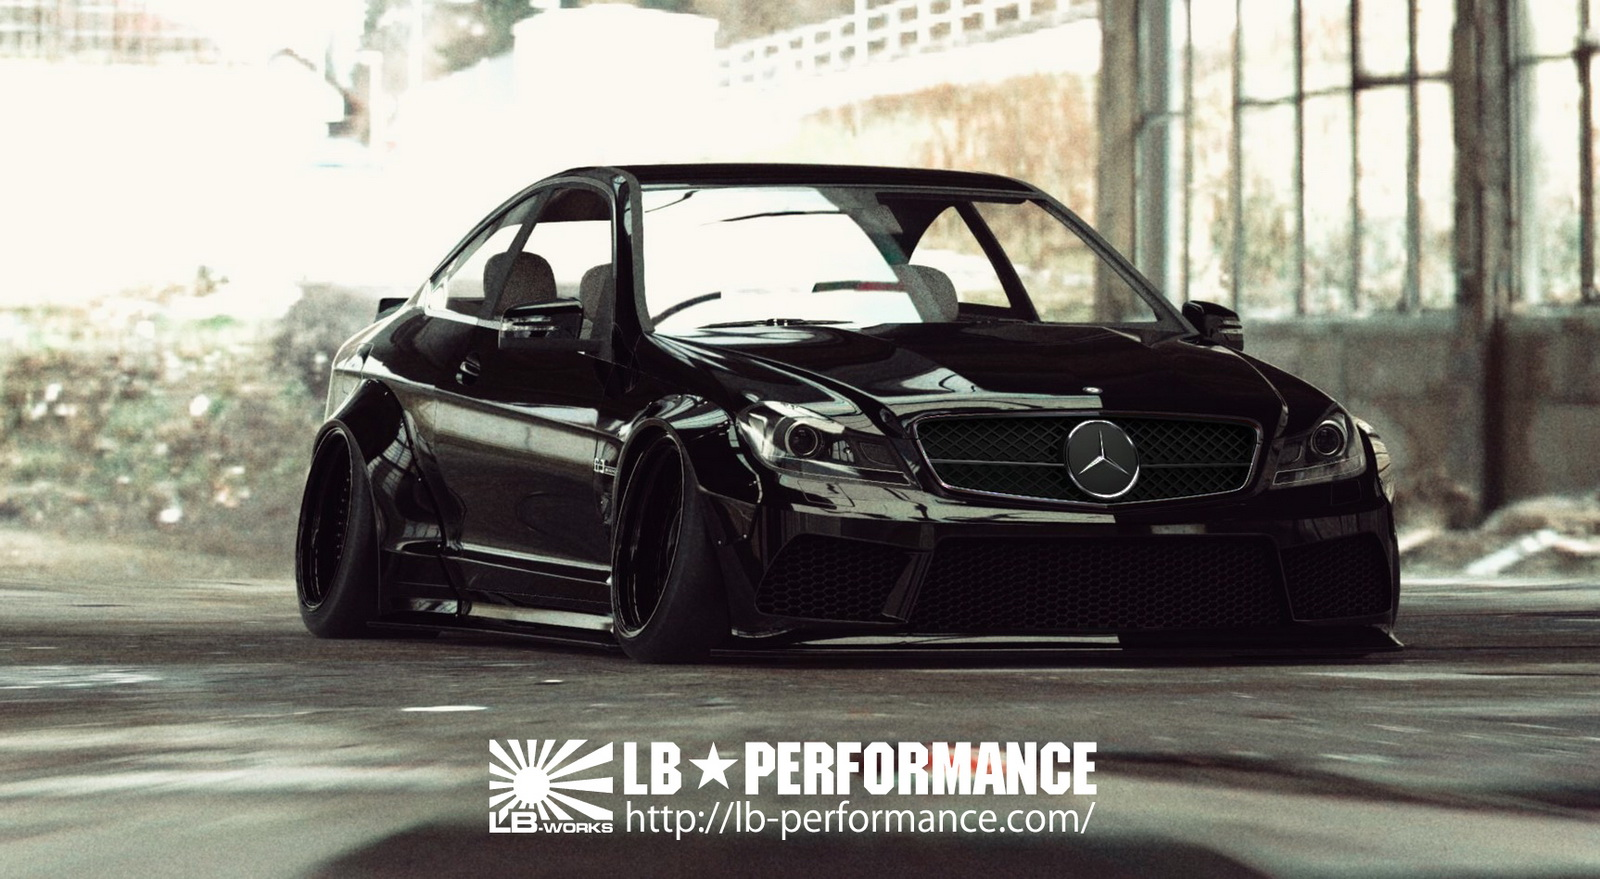 Liberty Walk Preview Their Widebody Kit For Merc C63 Amg Coupe